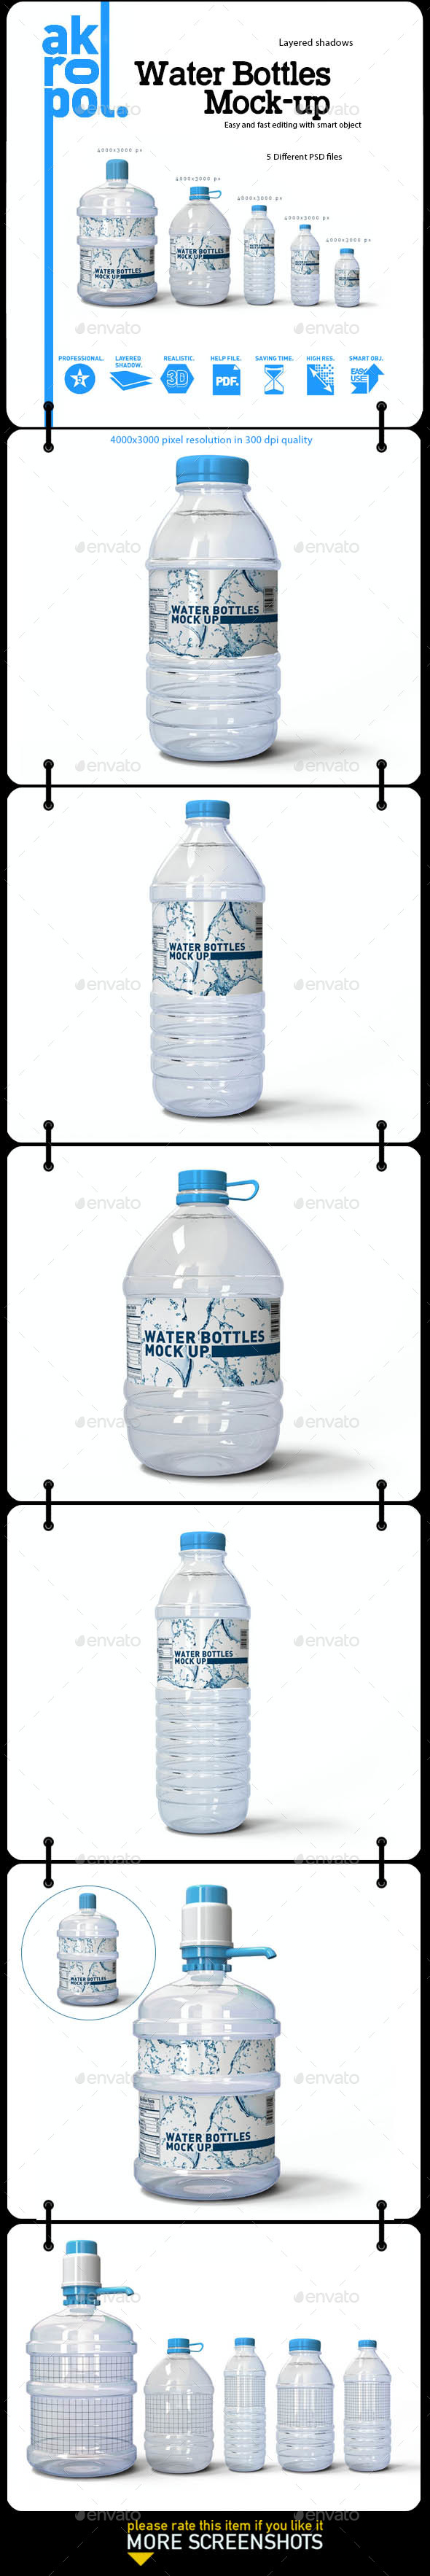 Water Bottles Mock-up - Product Mock-Ups Graphics